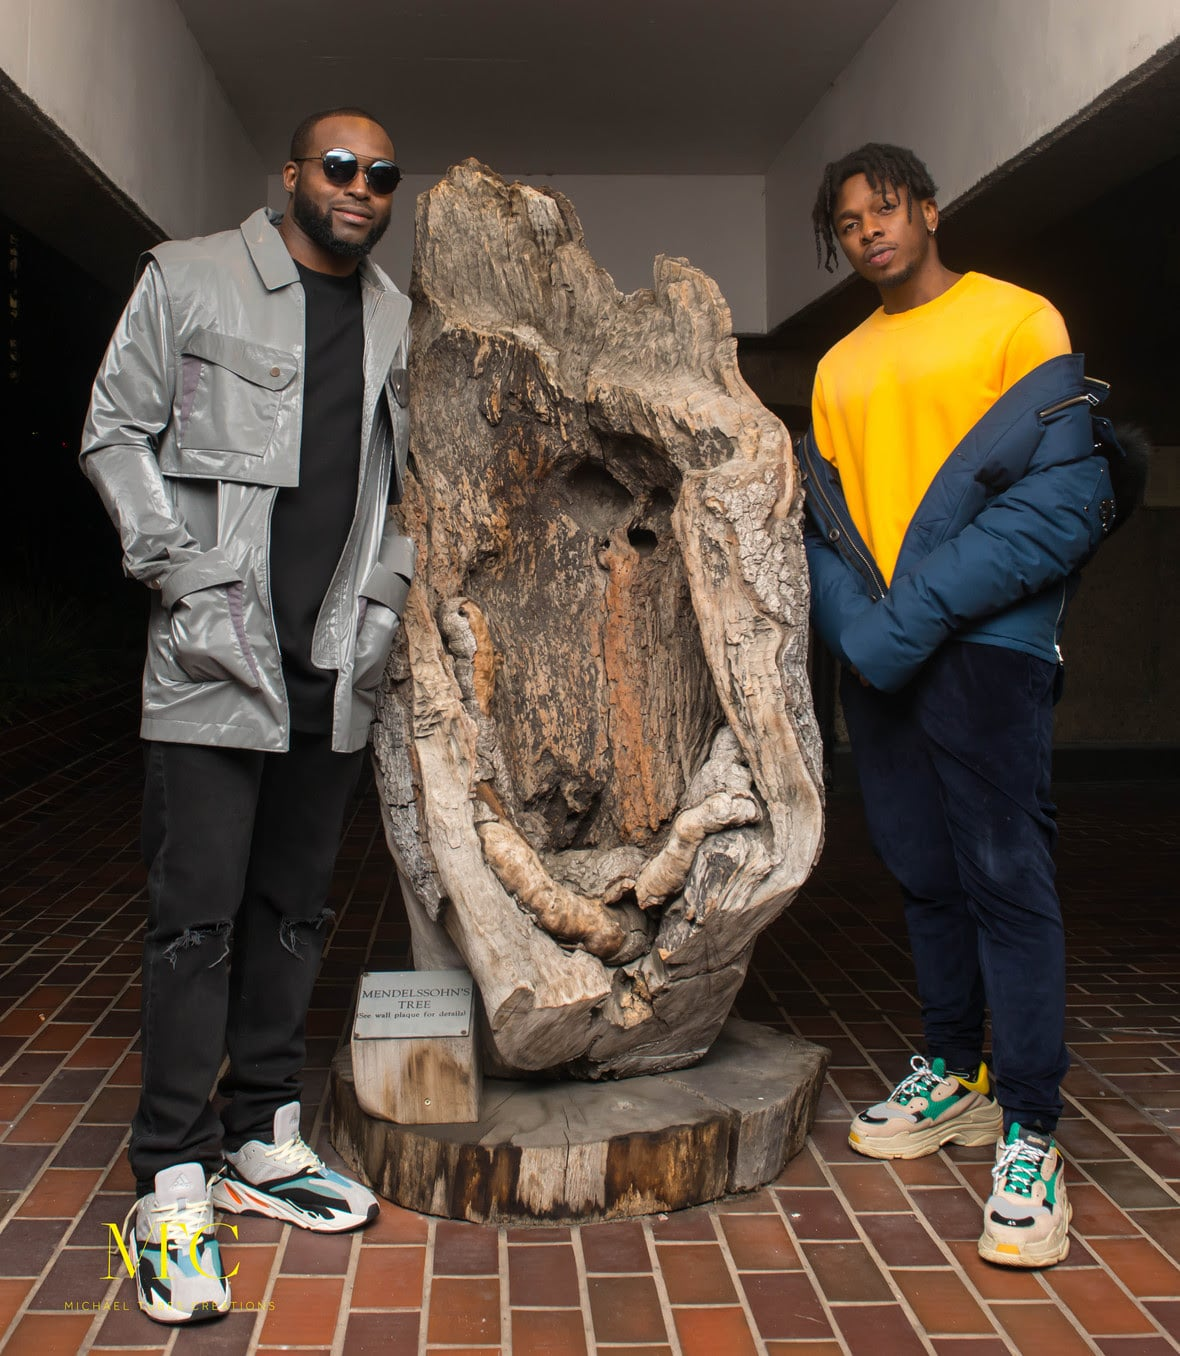 Check out BTS pictures from DJ Neptune's Why video shoot featuring the mad over you crooner Runtown. The video for Why was shot in the U.K and directed by JM Films productions. In the mean time enjoy the audio and lyrics video to Why, while we await the official music video and the album #GREATNESS by International DJ Neptune.  Click To Download WHY  Click To Watch WHY Lyrics Video  Click To Connect With DJ Neptune